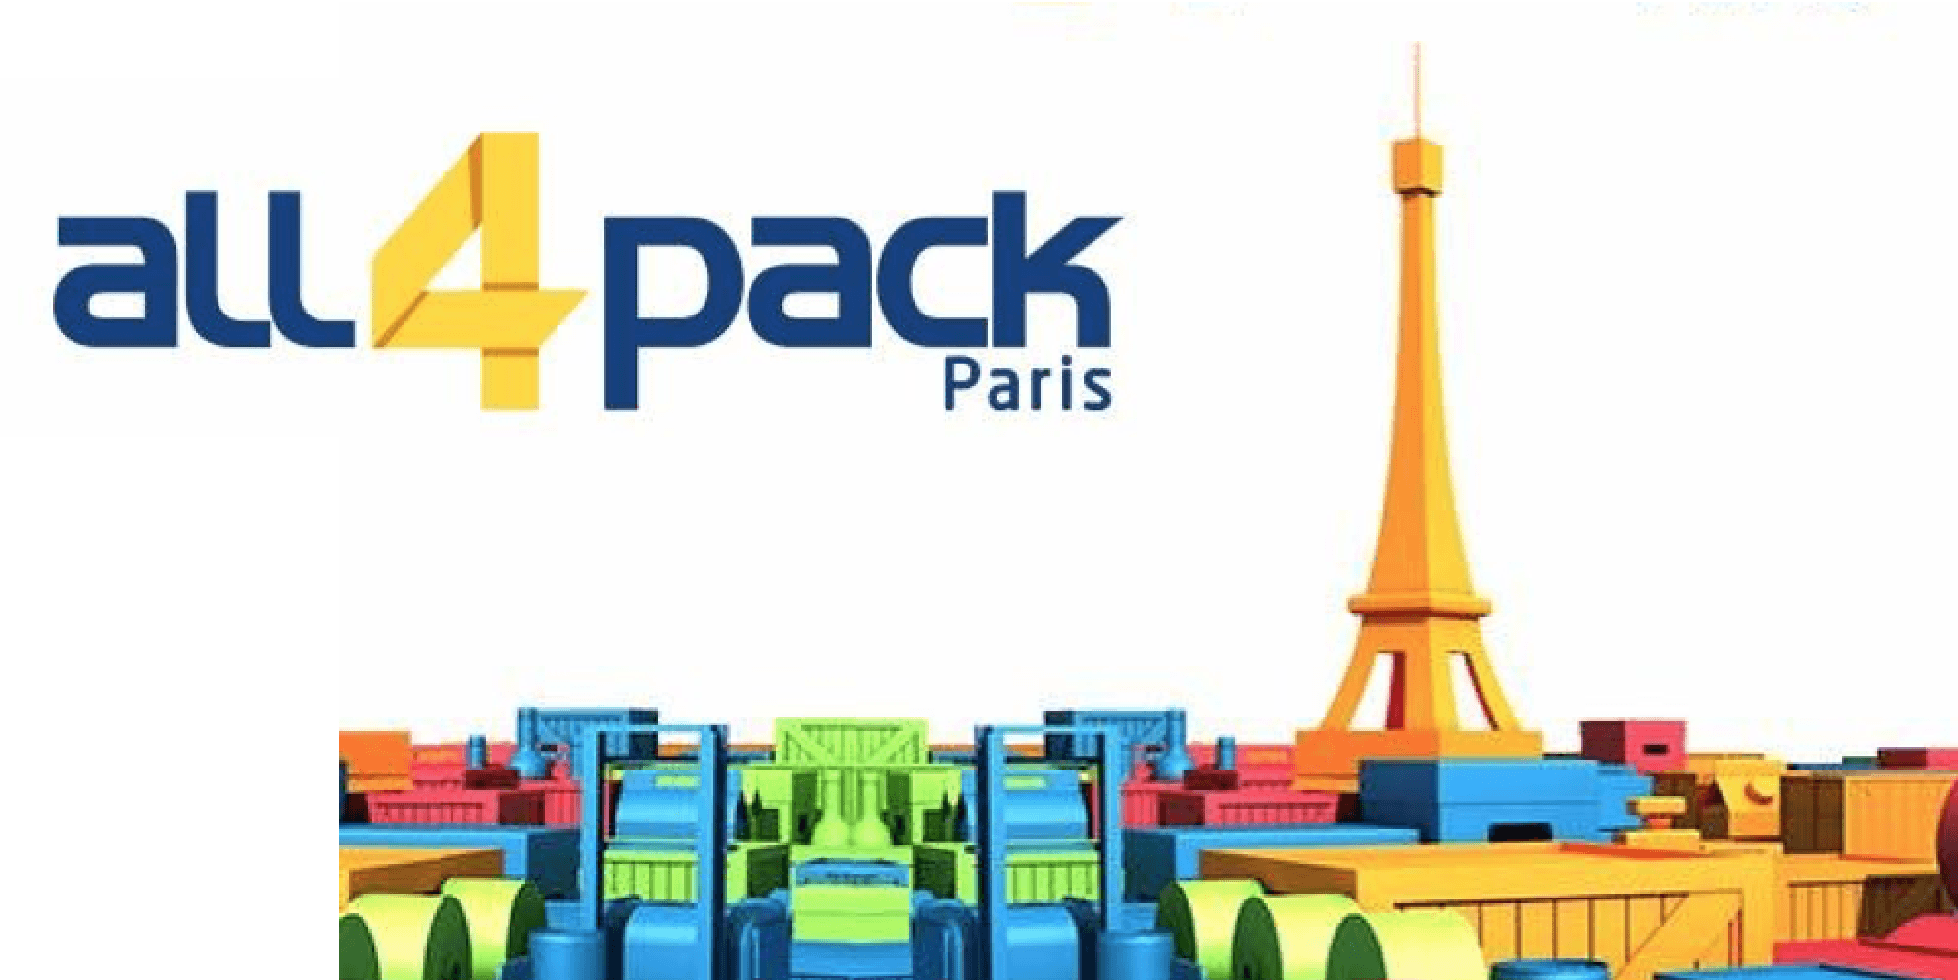 Focke Meler will attend the ALL4PACK packaging trade show in Paris.